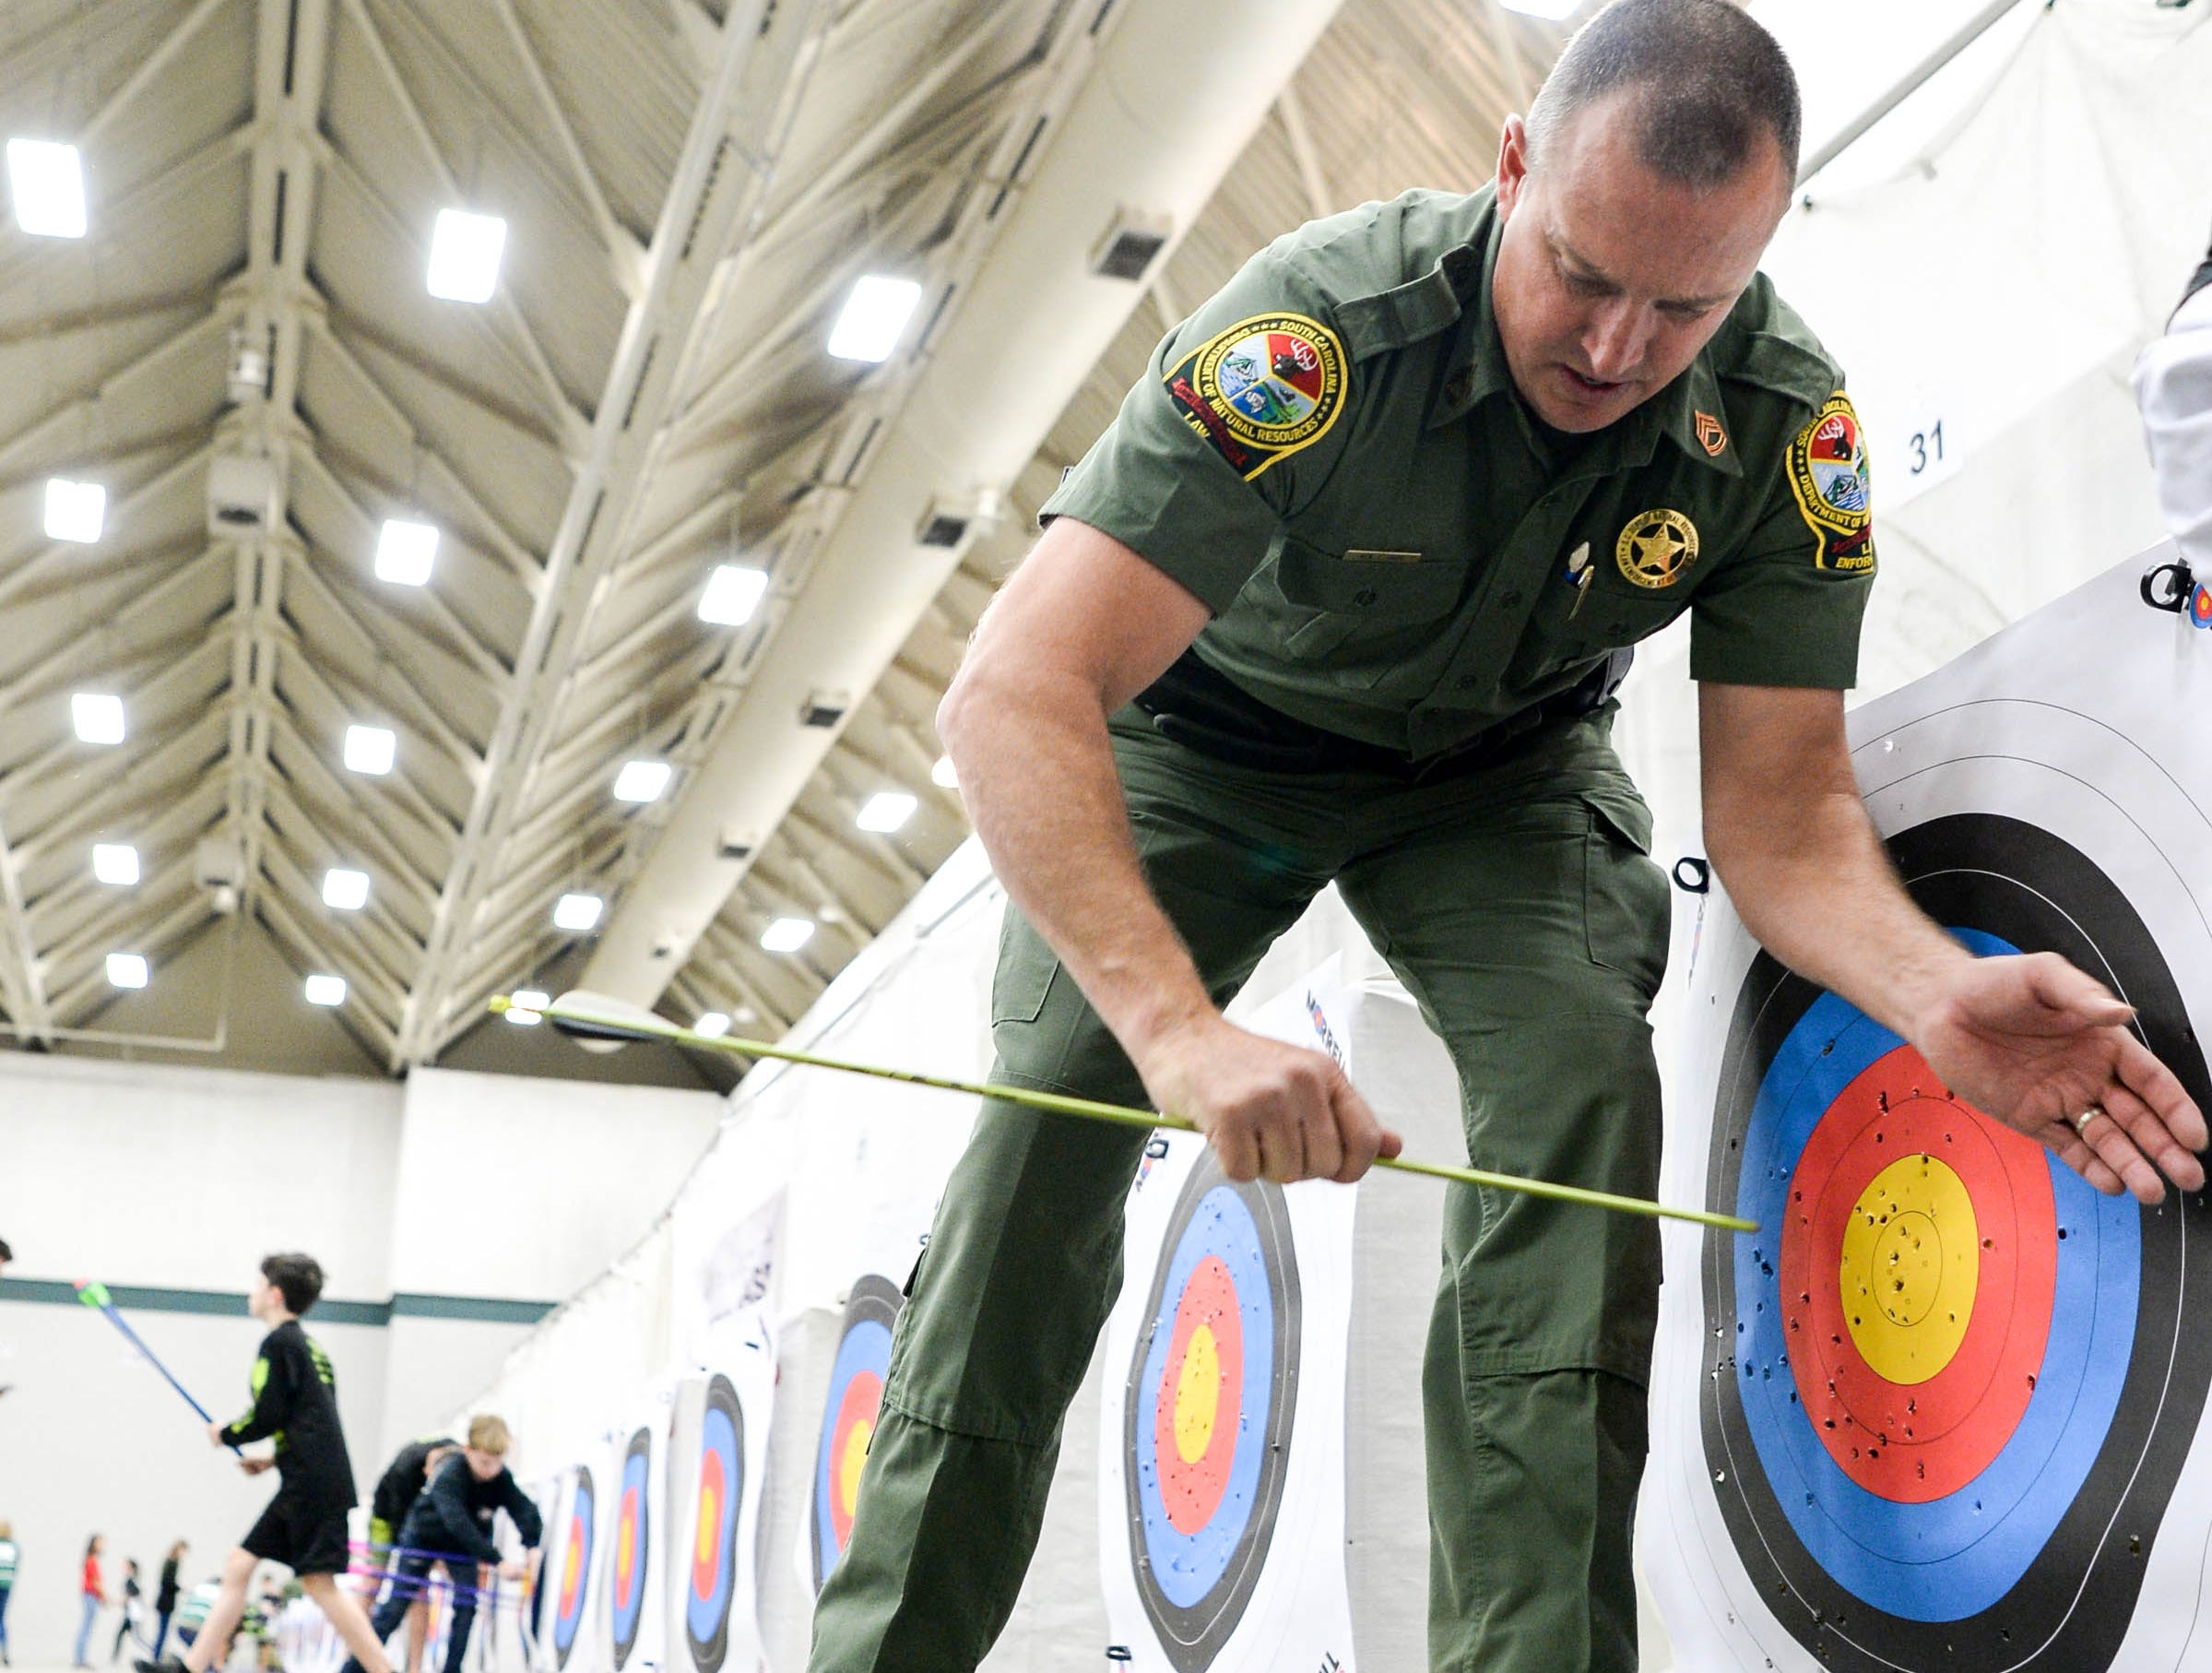 Sfc. Ken Cope helps pull out arrows during the South Carolina Department of Natural Resources regional National Archery in the Schools Program (NASP) regional competition at the Anderson Civic Center Wednesday.  The program, which awards $50,000 in scholarships to high school seniors, is a joint venture between state departments of Education and Wildlife. The competition in Anderson, leading up to the state finals March 26-28 in Sumter, had 950 children from 14 elementary and 23 high schools around the state.